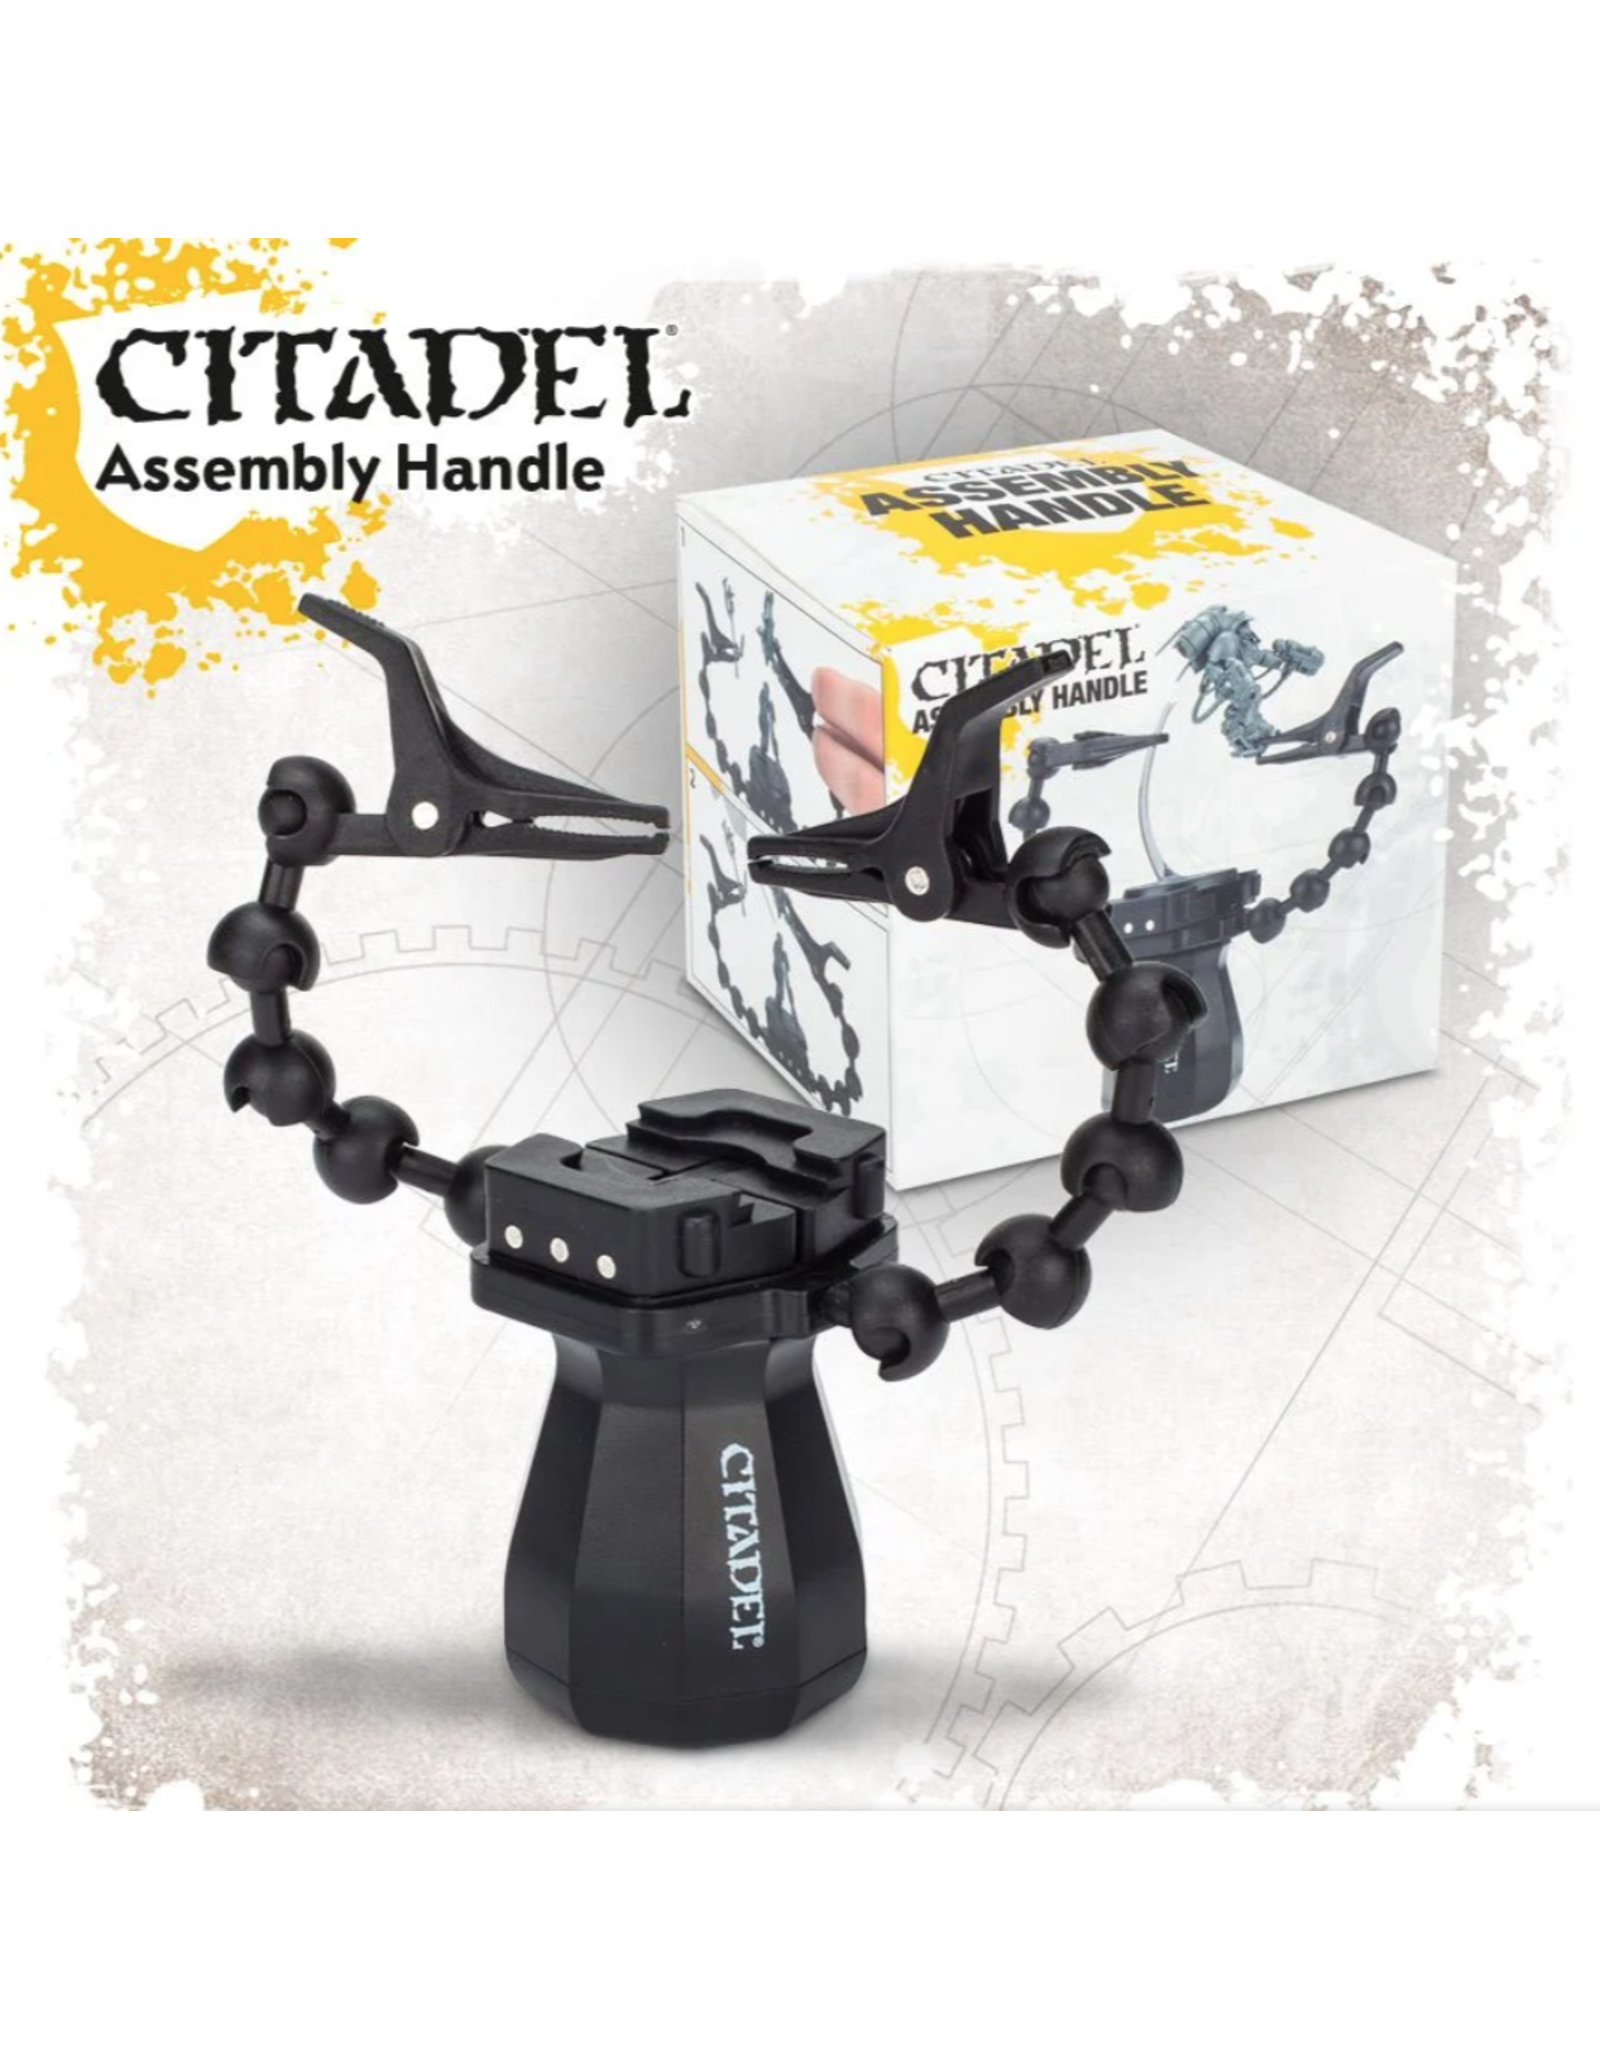 Citadel Citadel Assembly Handle